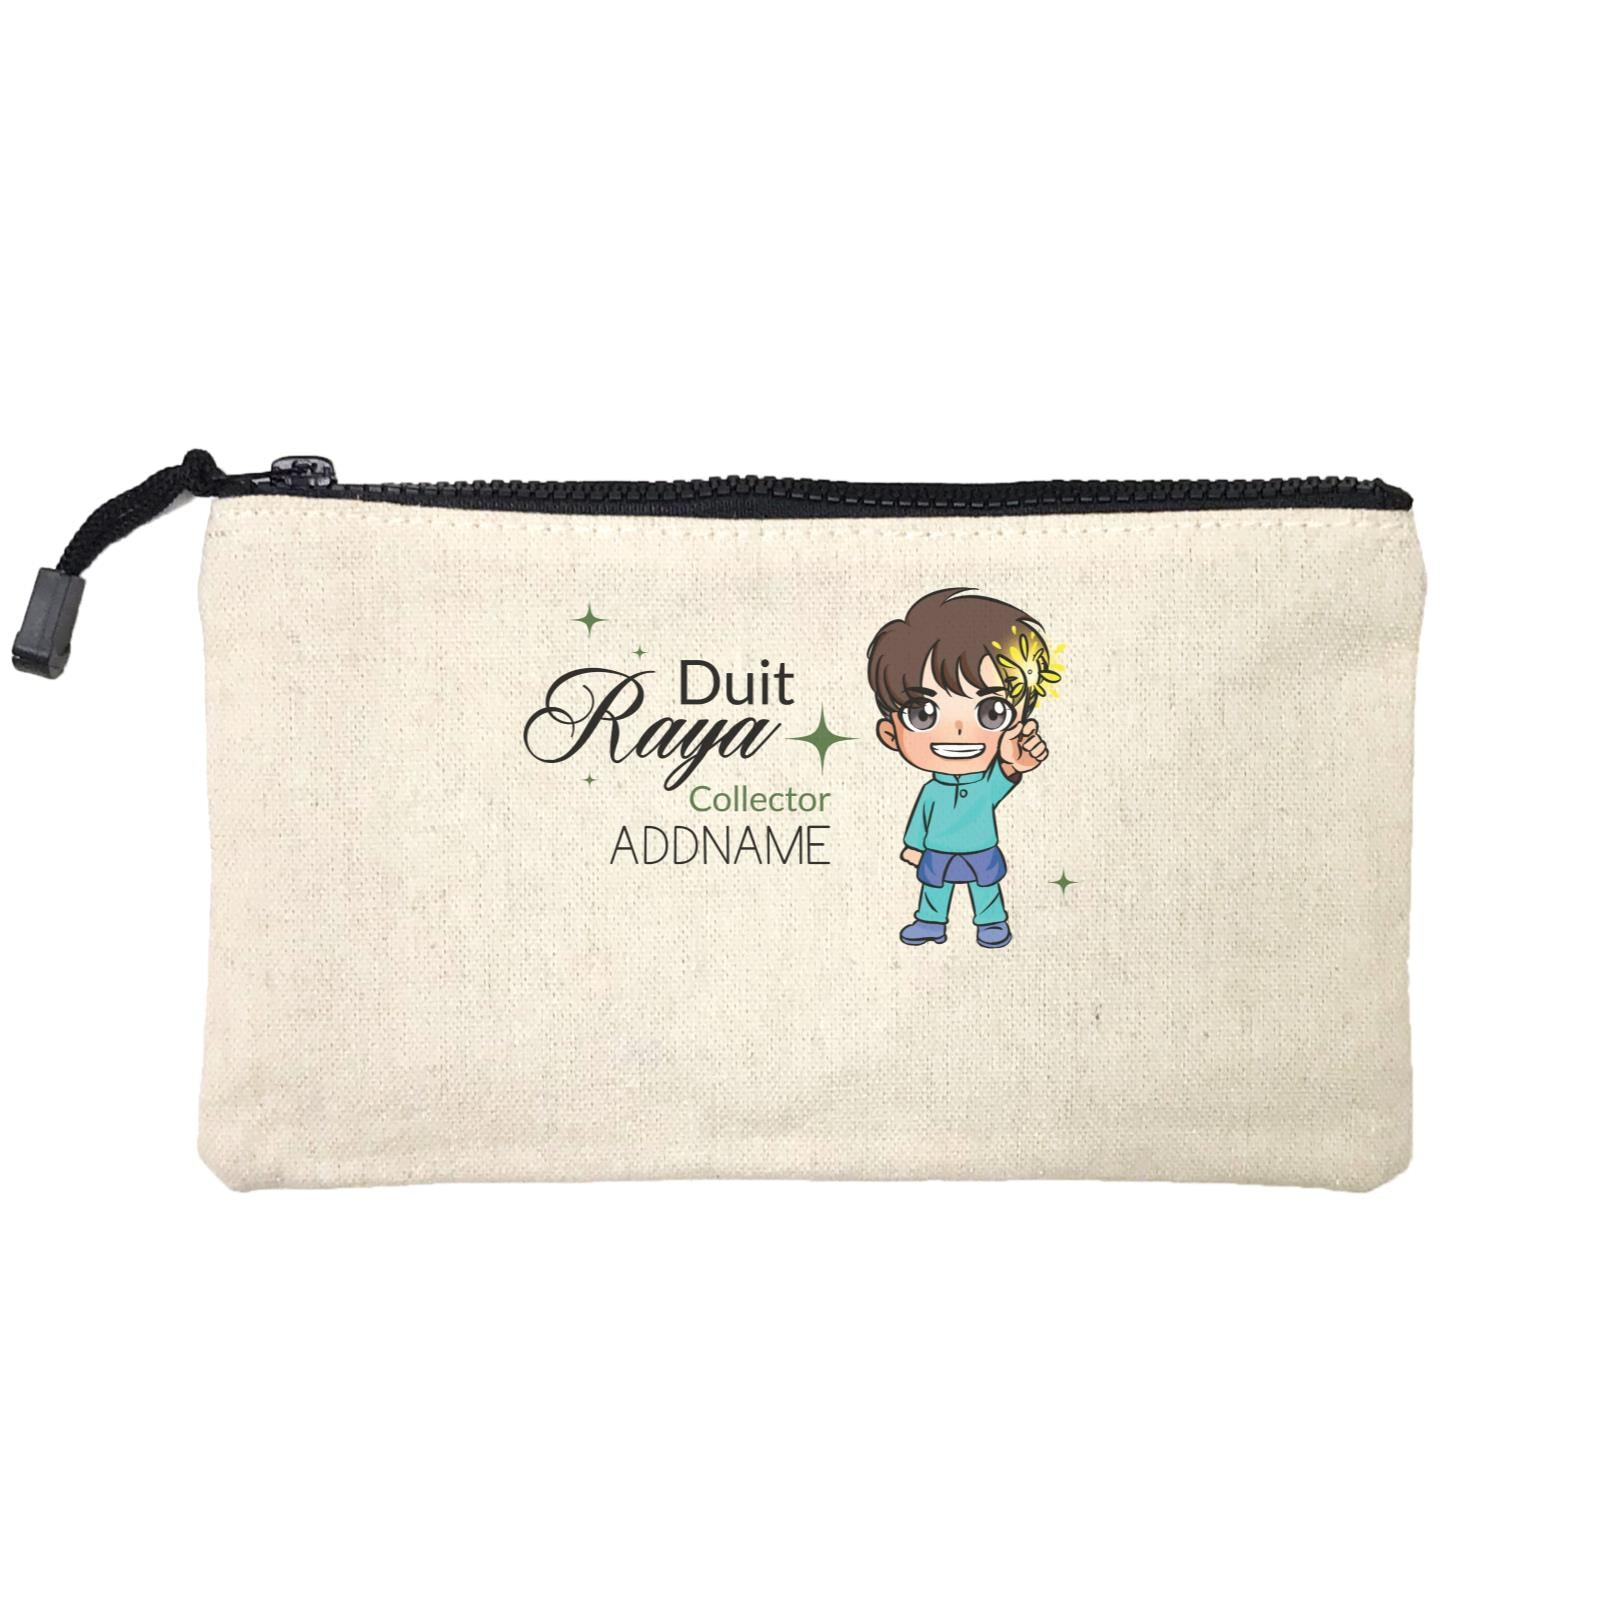 Raya Chibi Little Boy Duit Raya Collector Addname Mini Accessories Stationery Pouch